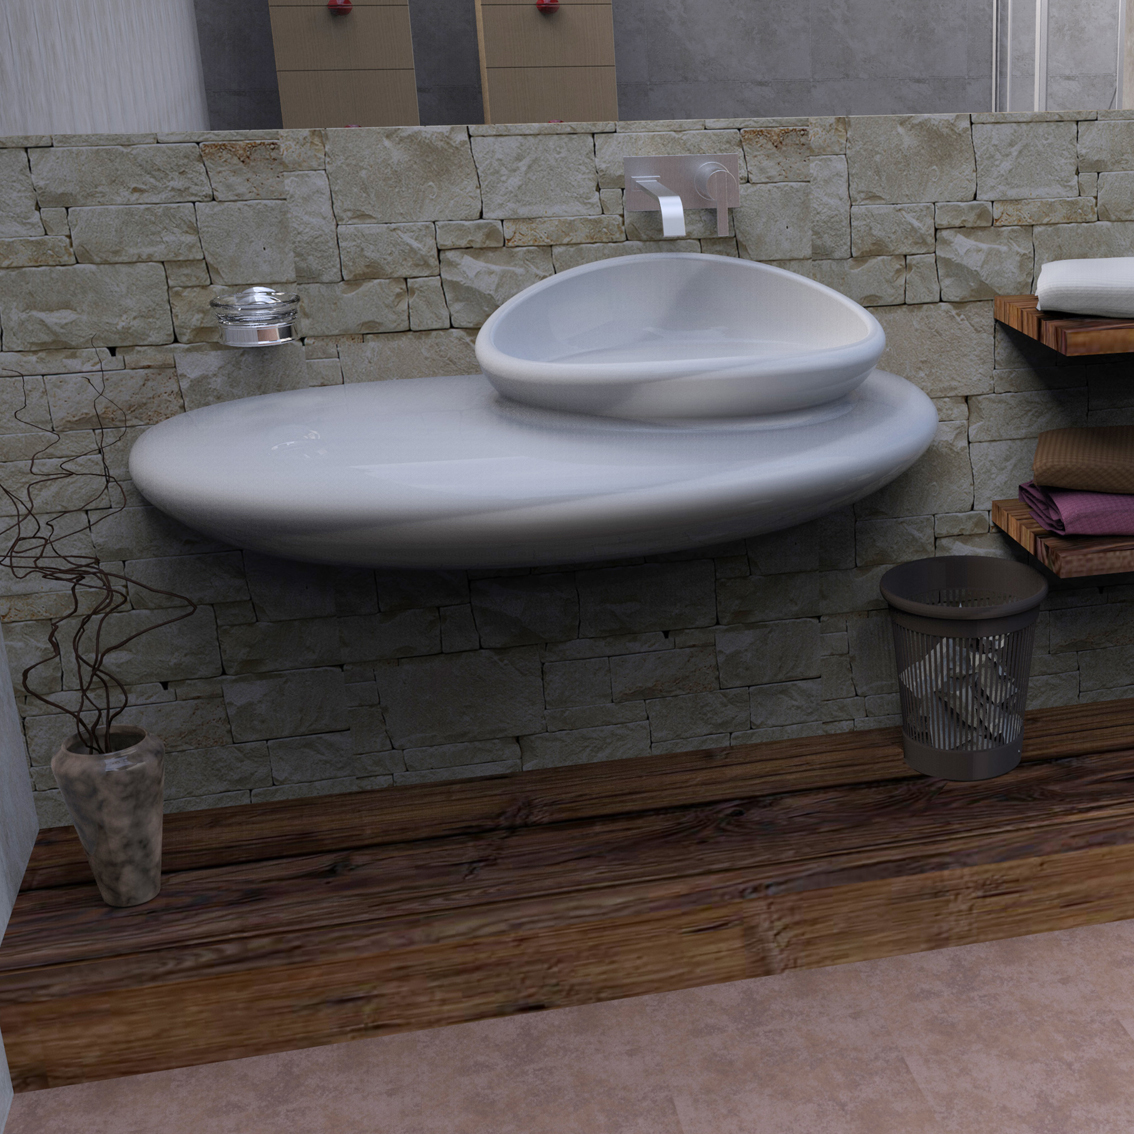 Stone lavandini e vasche zad zone of absolute design for Lavandini moderni bagno